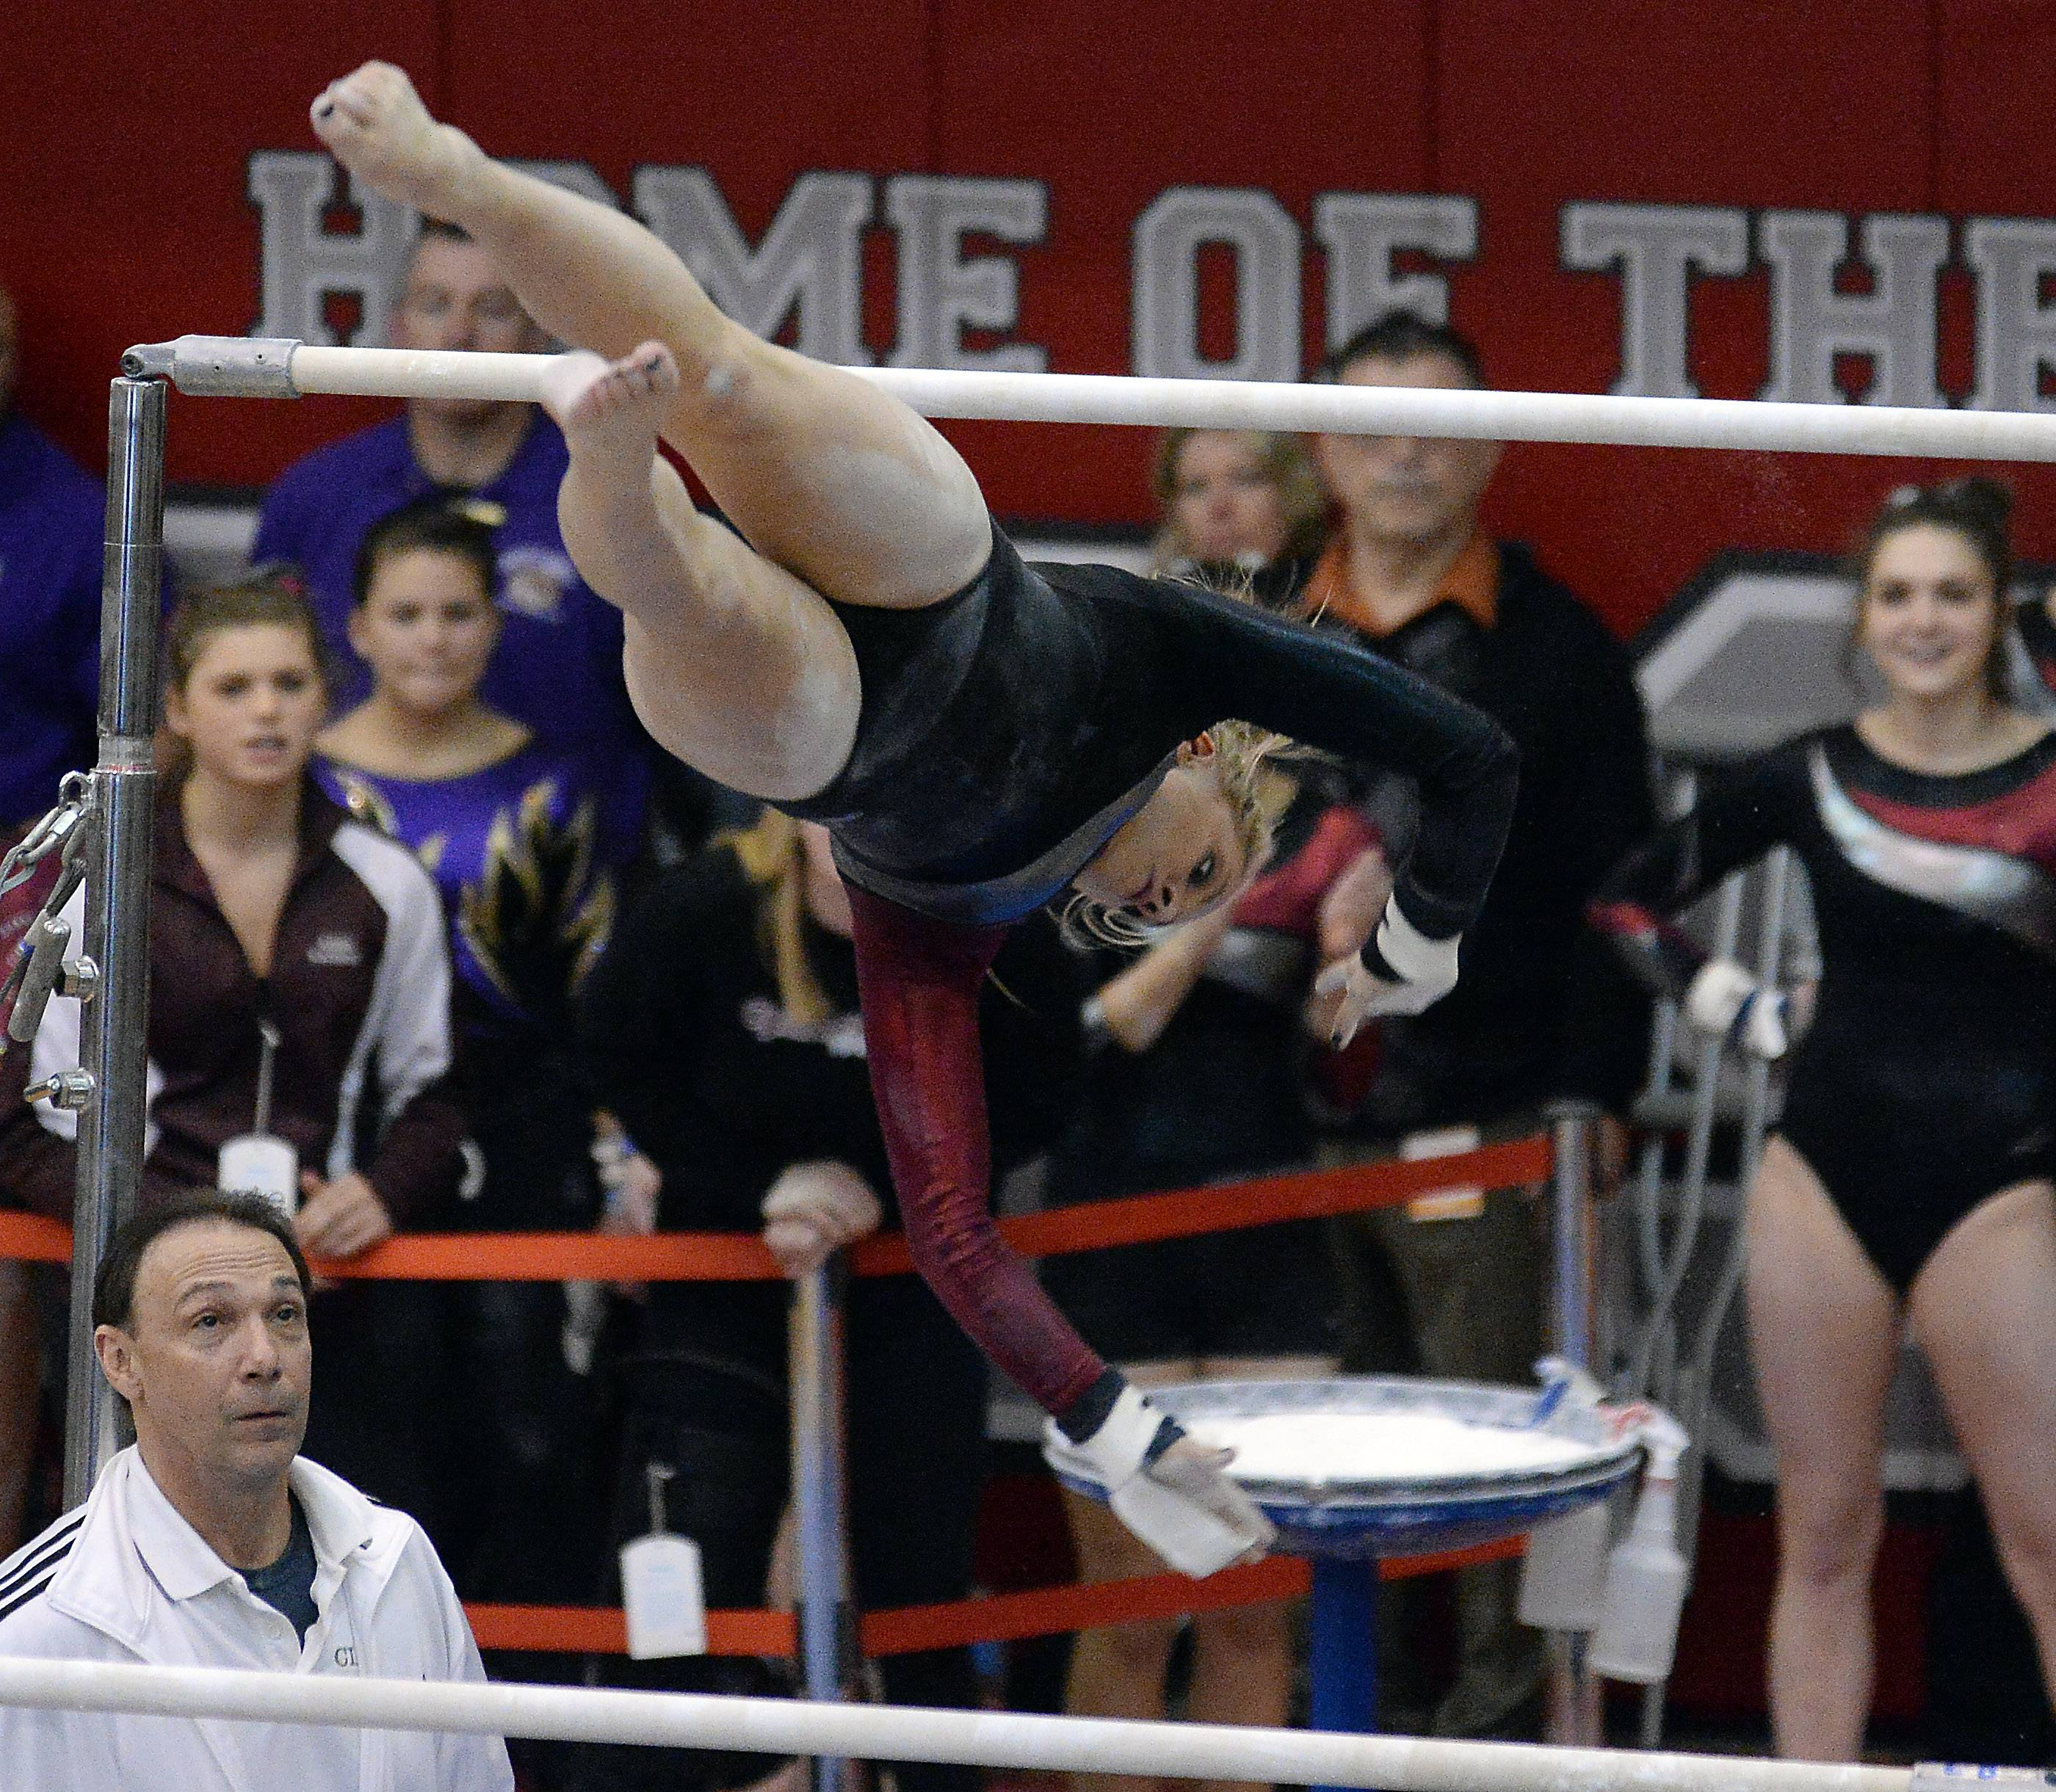 Maddie Solka of Prairie Ridge High School performs on the uneven parallel bars.